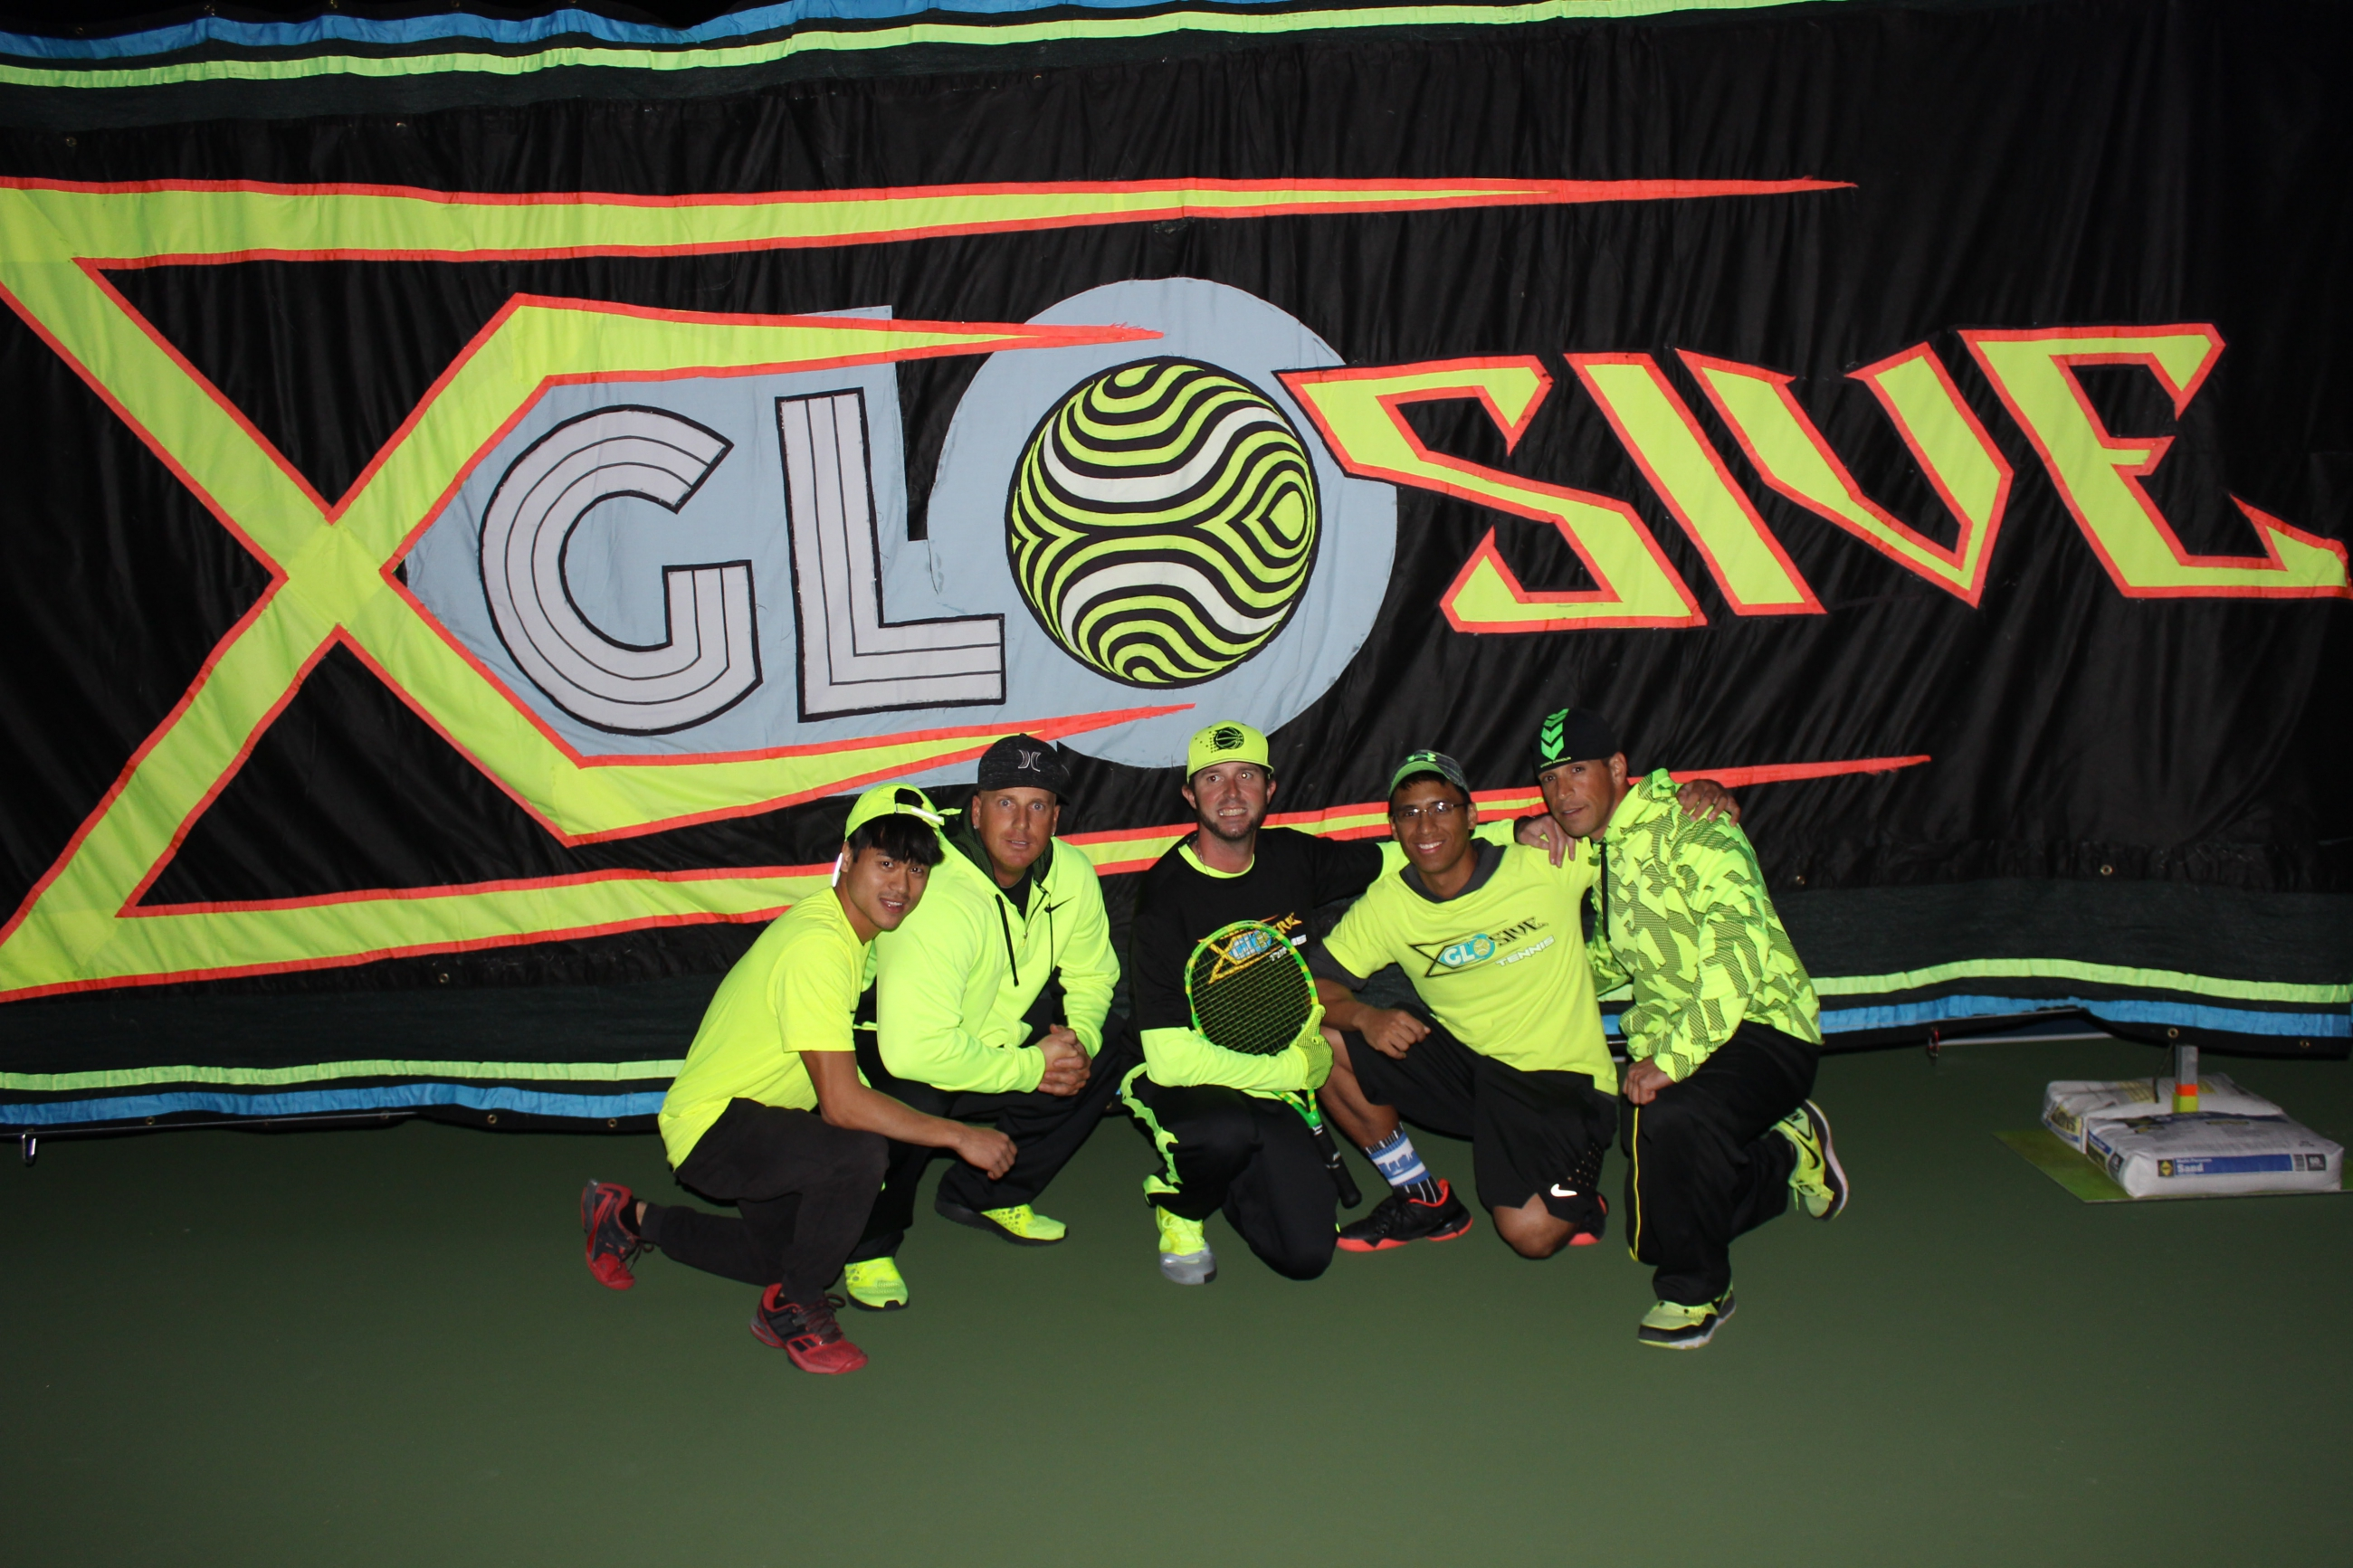 Xglosive Tennis Team